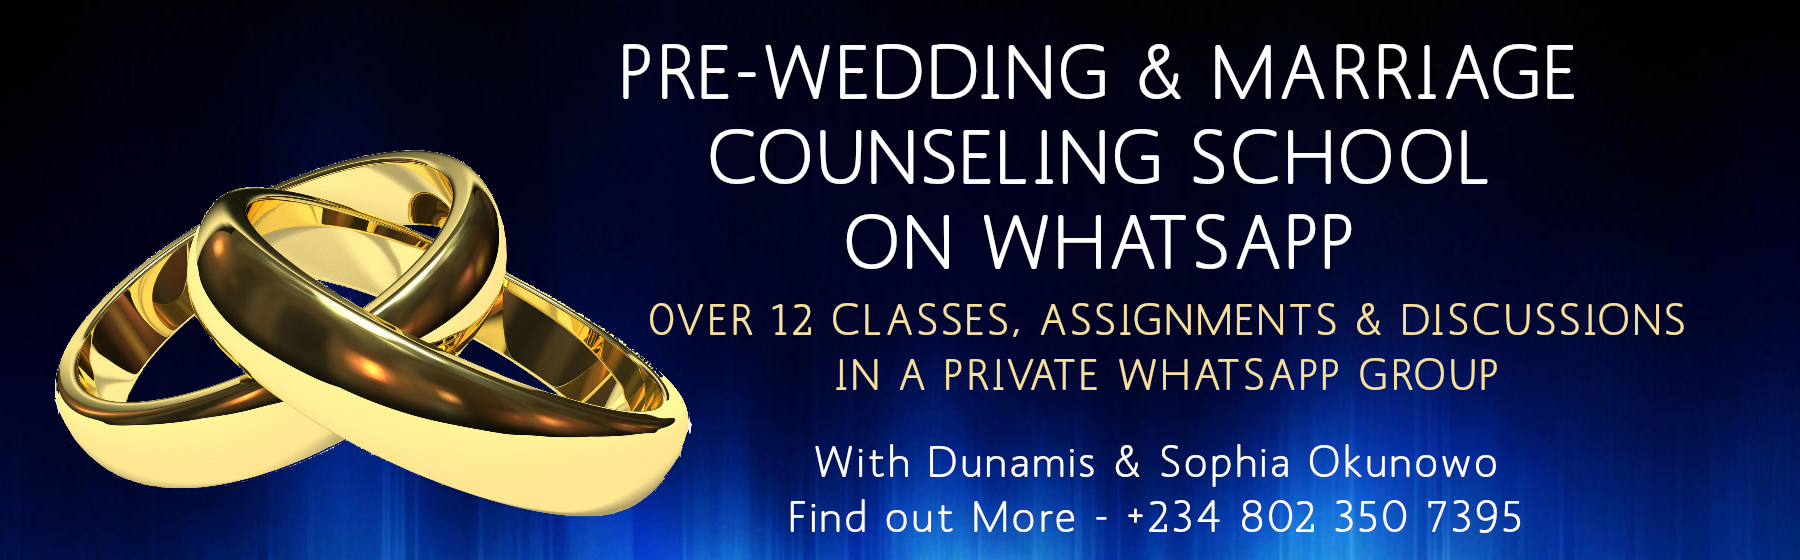 PRE-WEDDING & MARRIAGE COUNSELING SCHOOL - For those whose wedding is near or just ahead